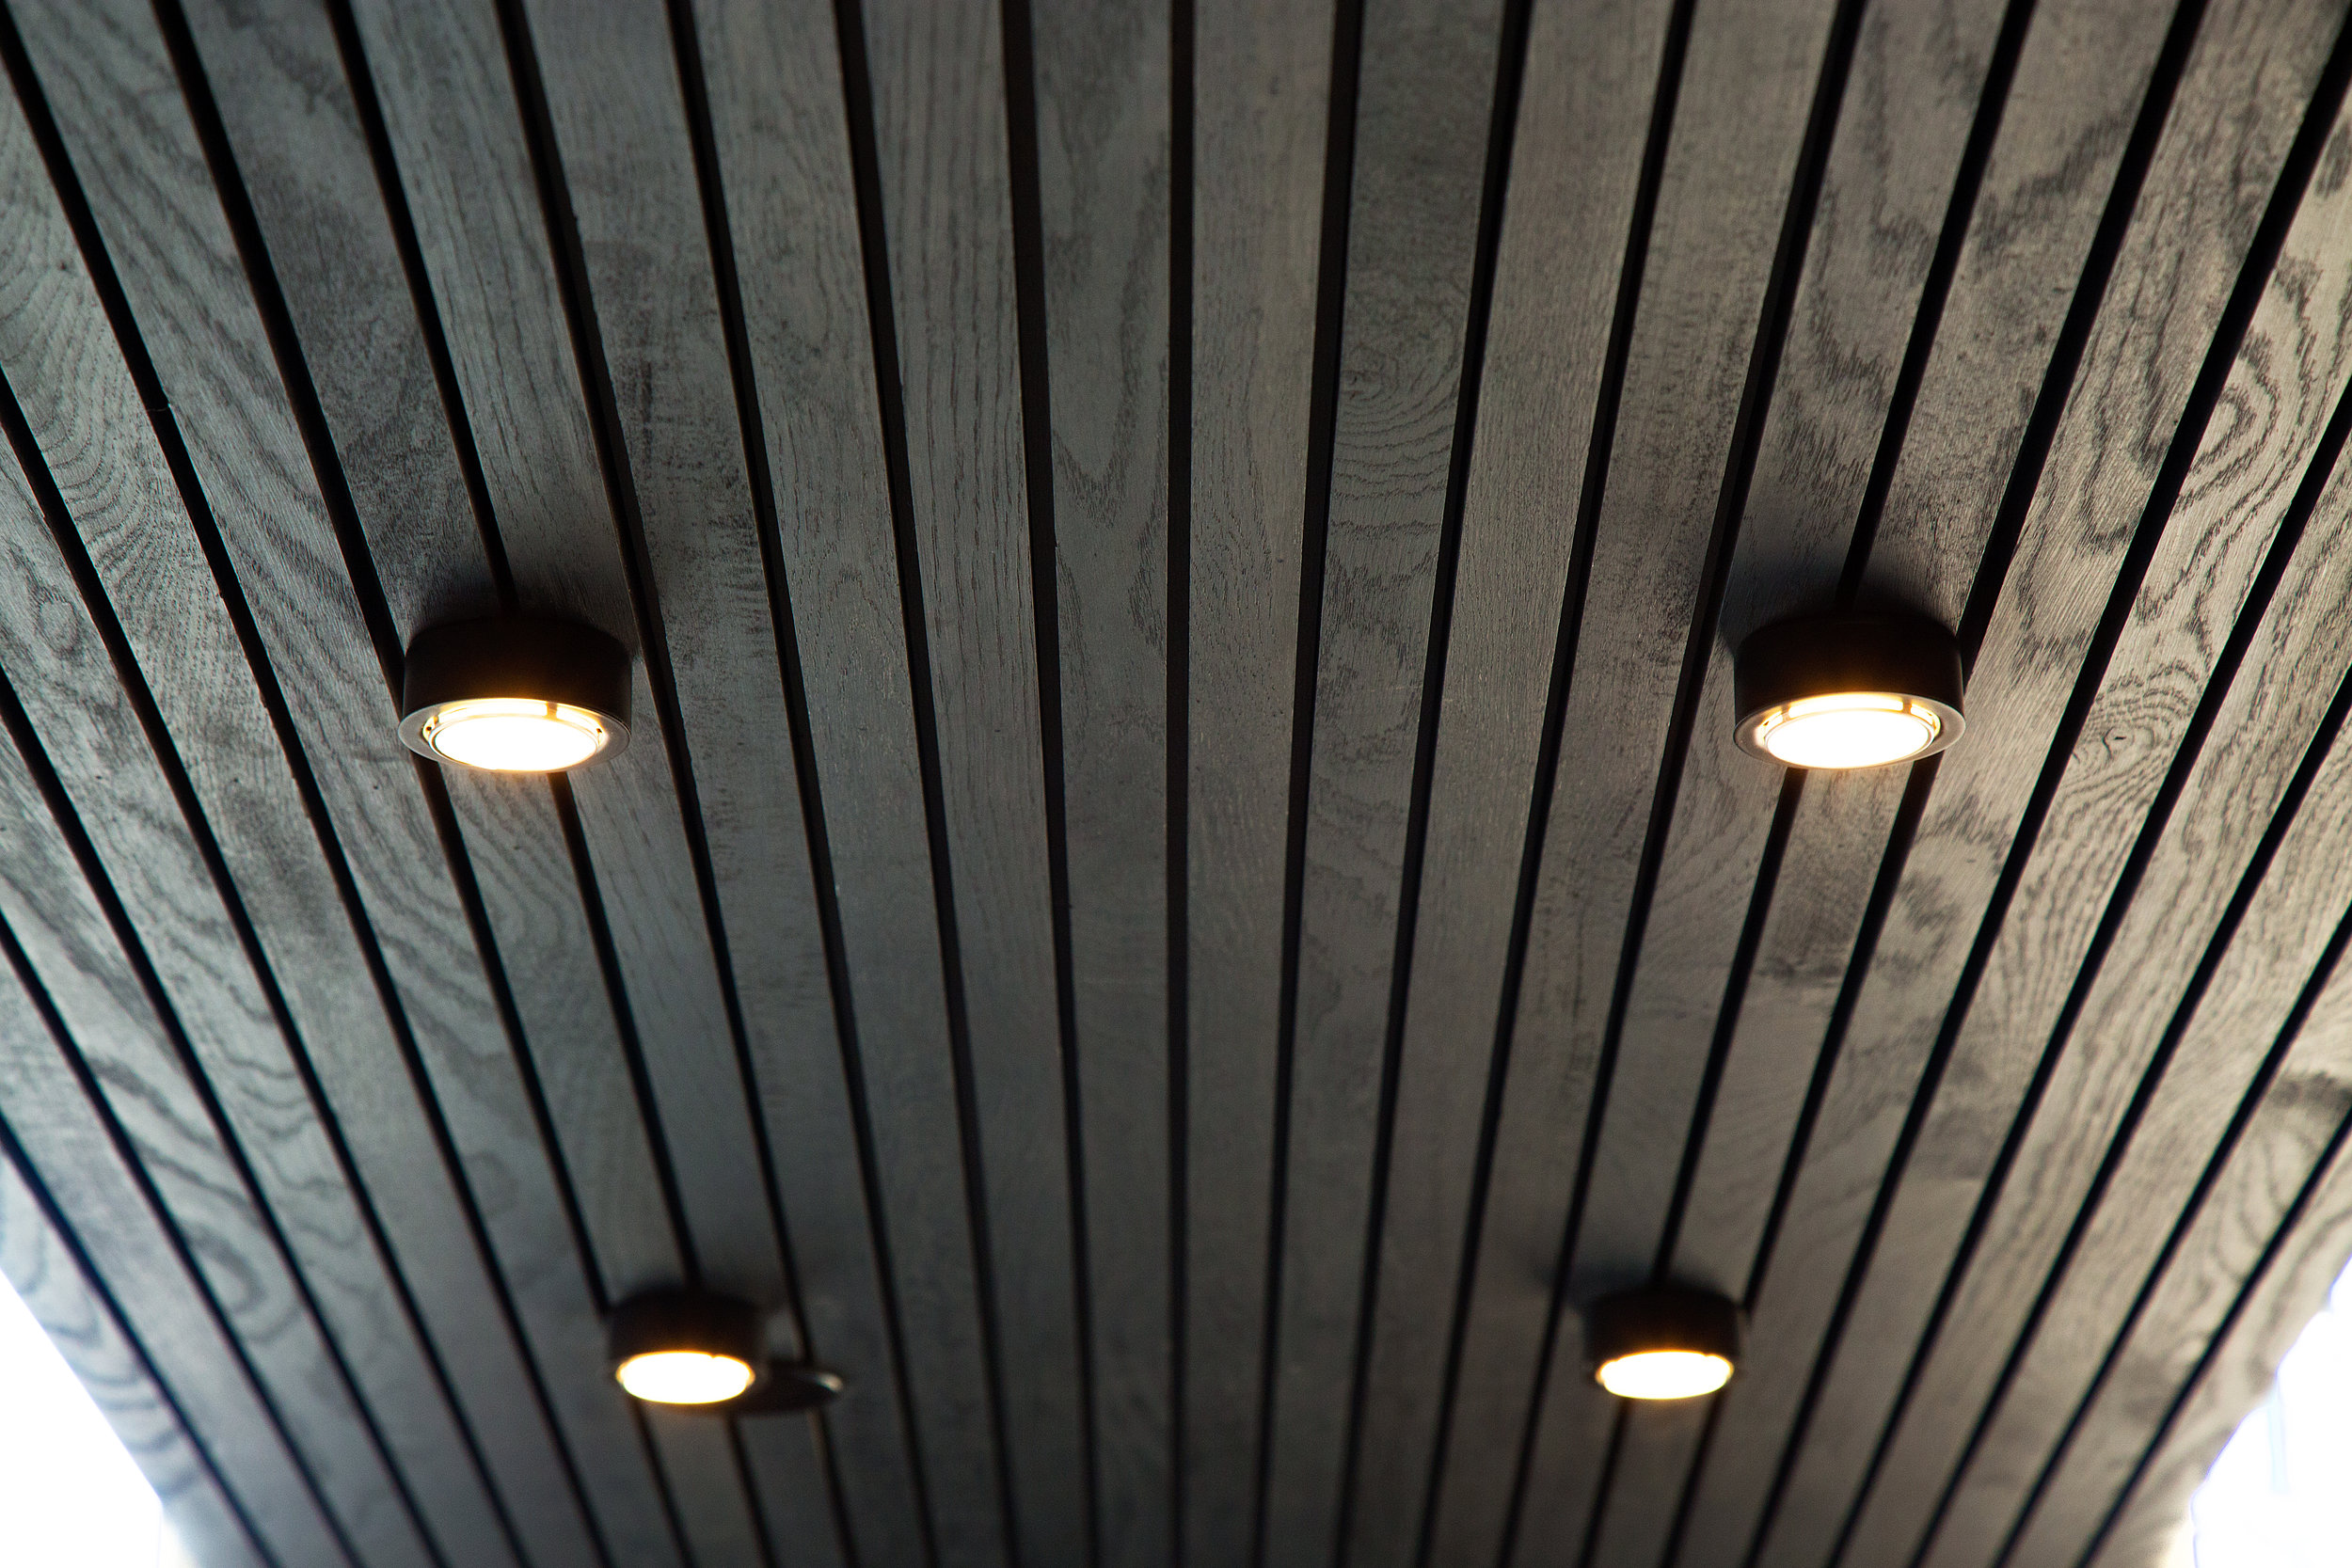 Lighting installed into the slatted soffit